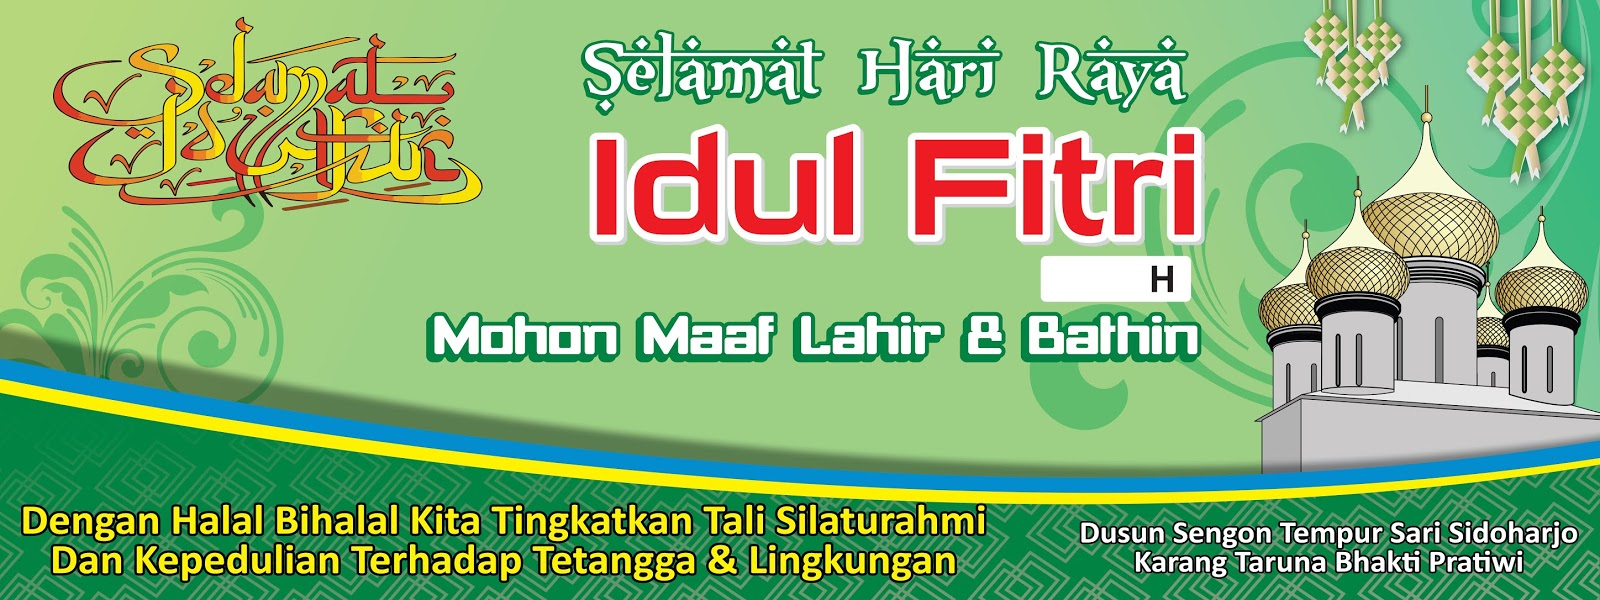 Background Halal Bihalal Idul Fitri Ala Model Kini